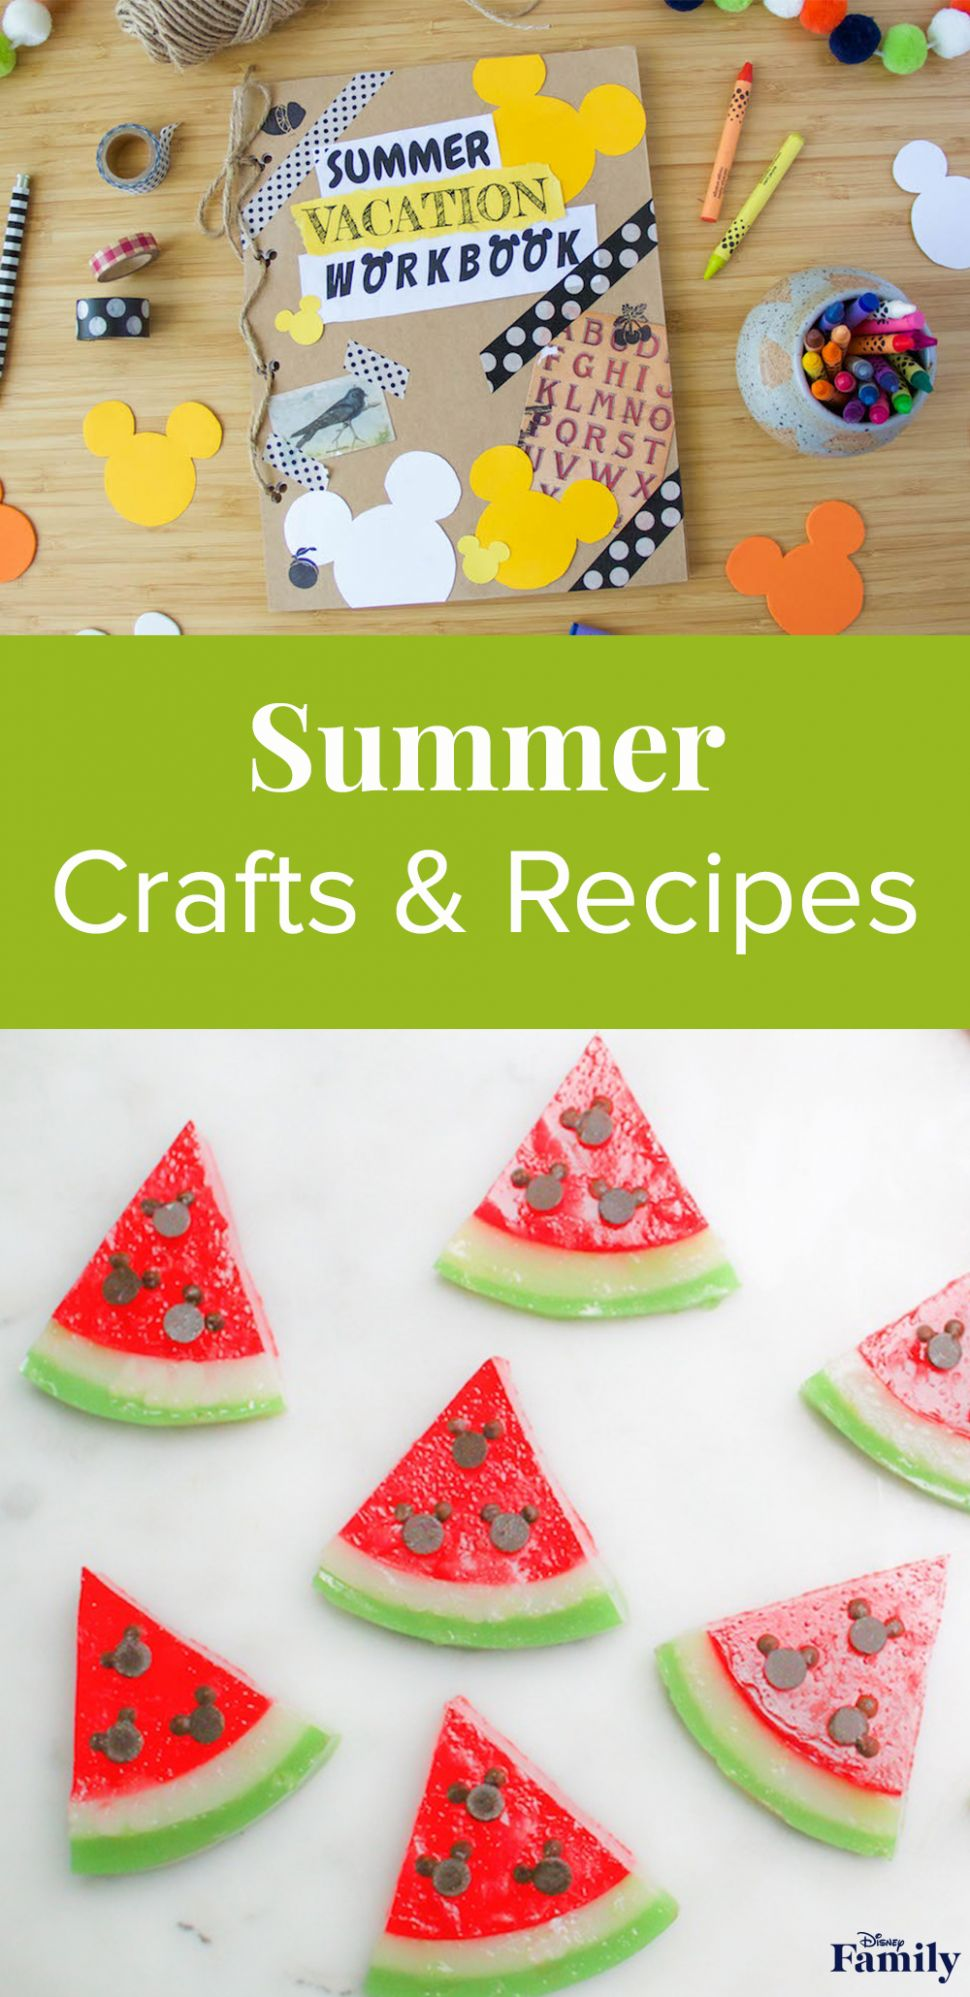 Summer Crafts and Recipes for Your Kids | Disney Family - Recipes For Summer Vacation